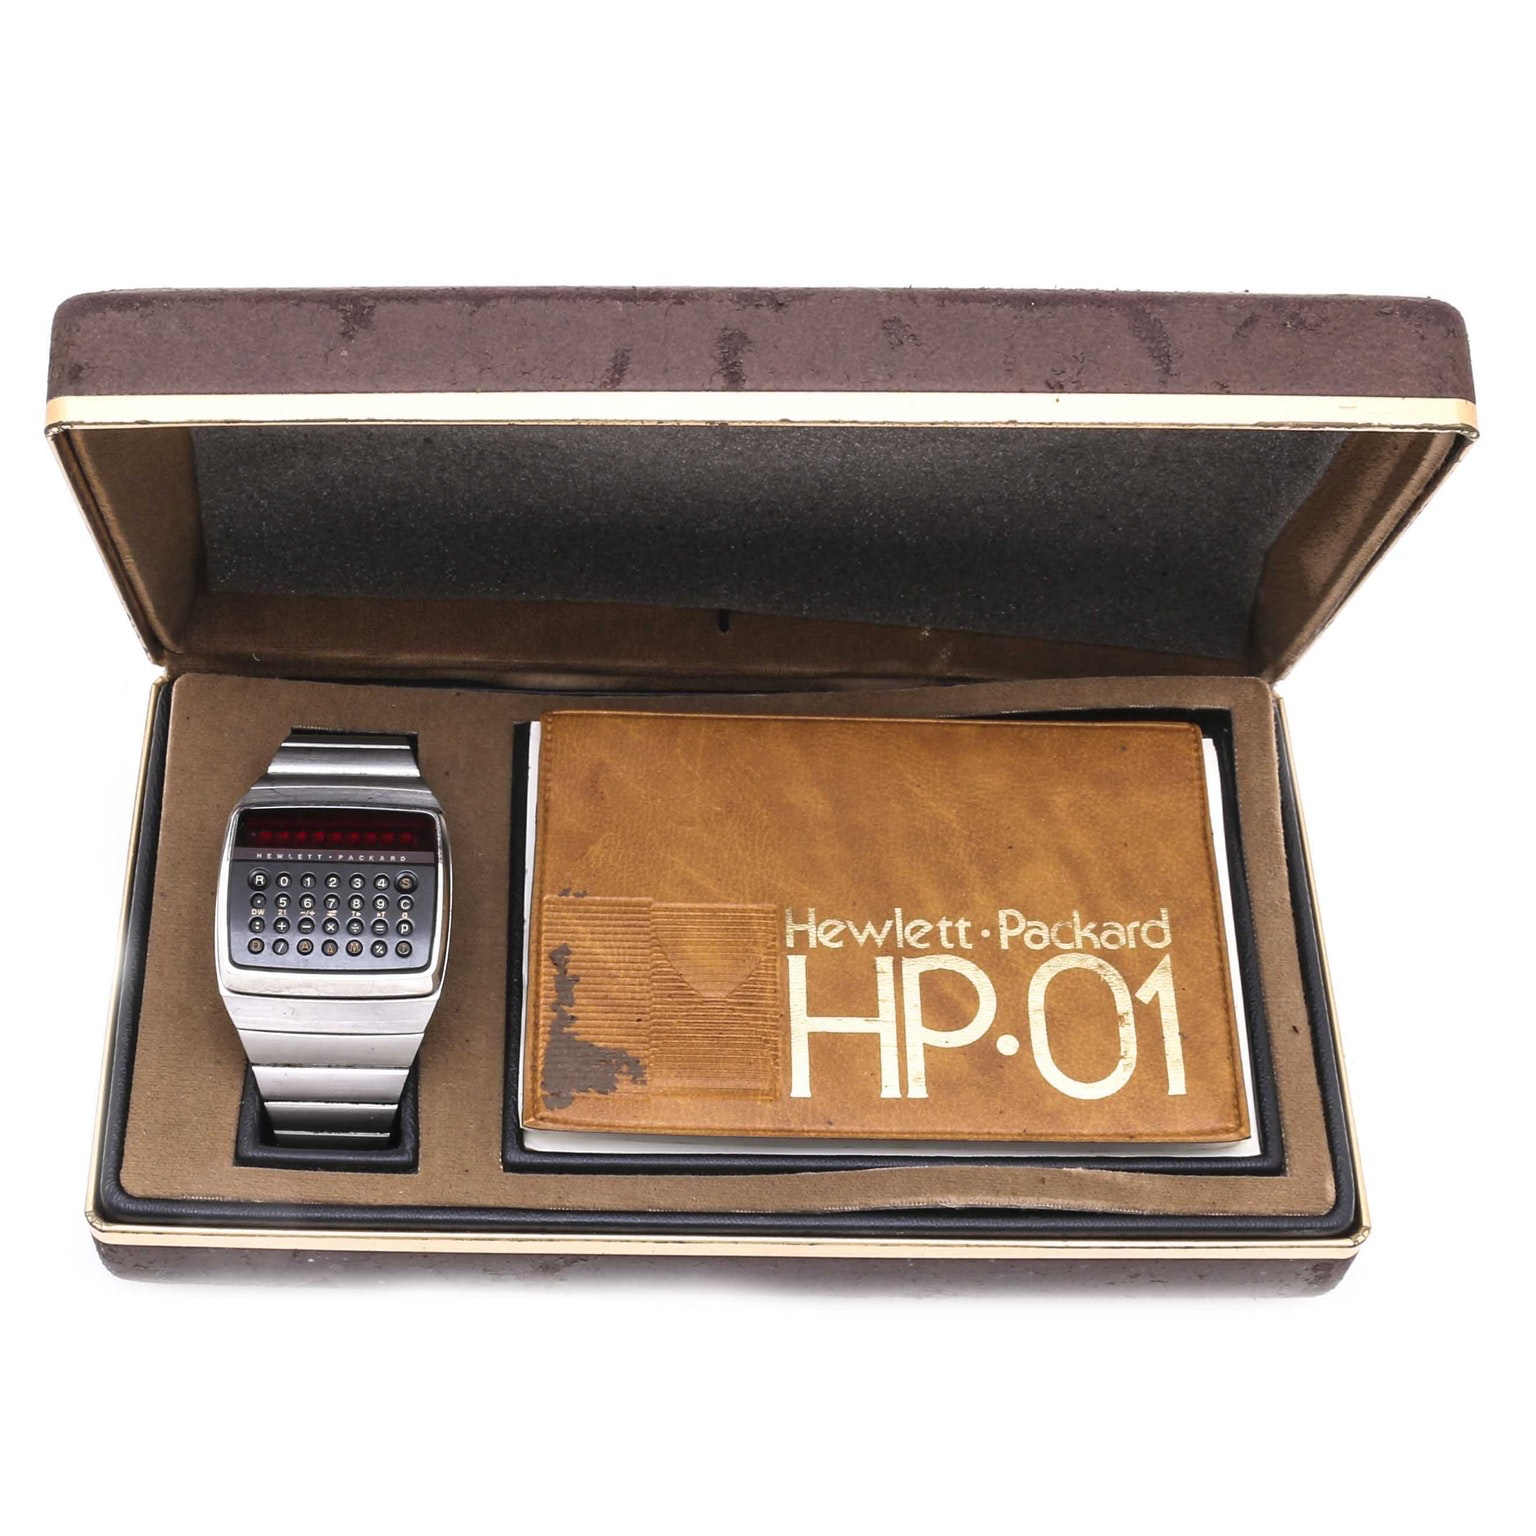 Vintage Hewlett Packard HP-01 Stainless Steel Digital Electronic Wristwatch